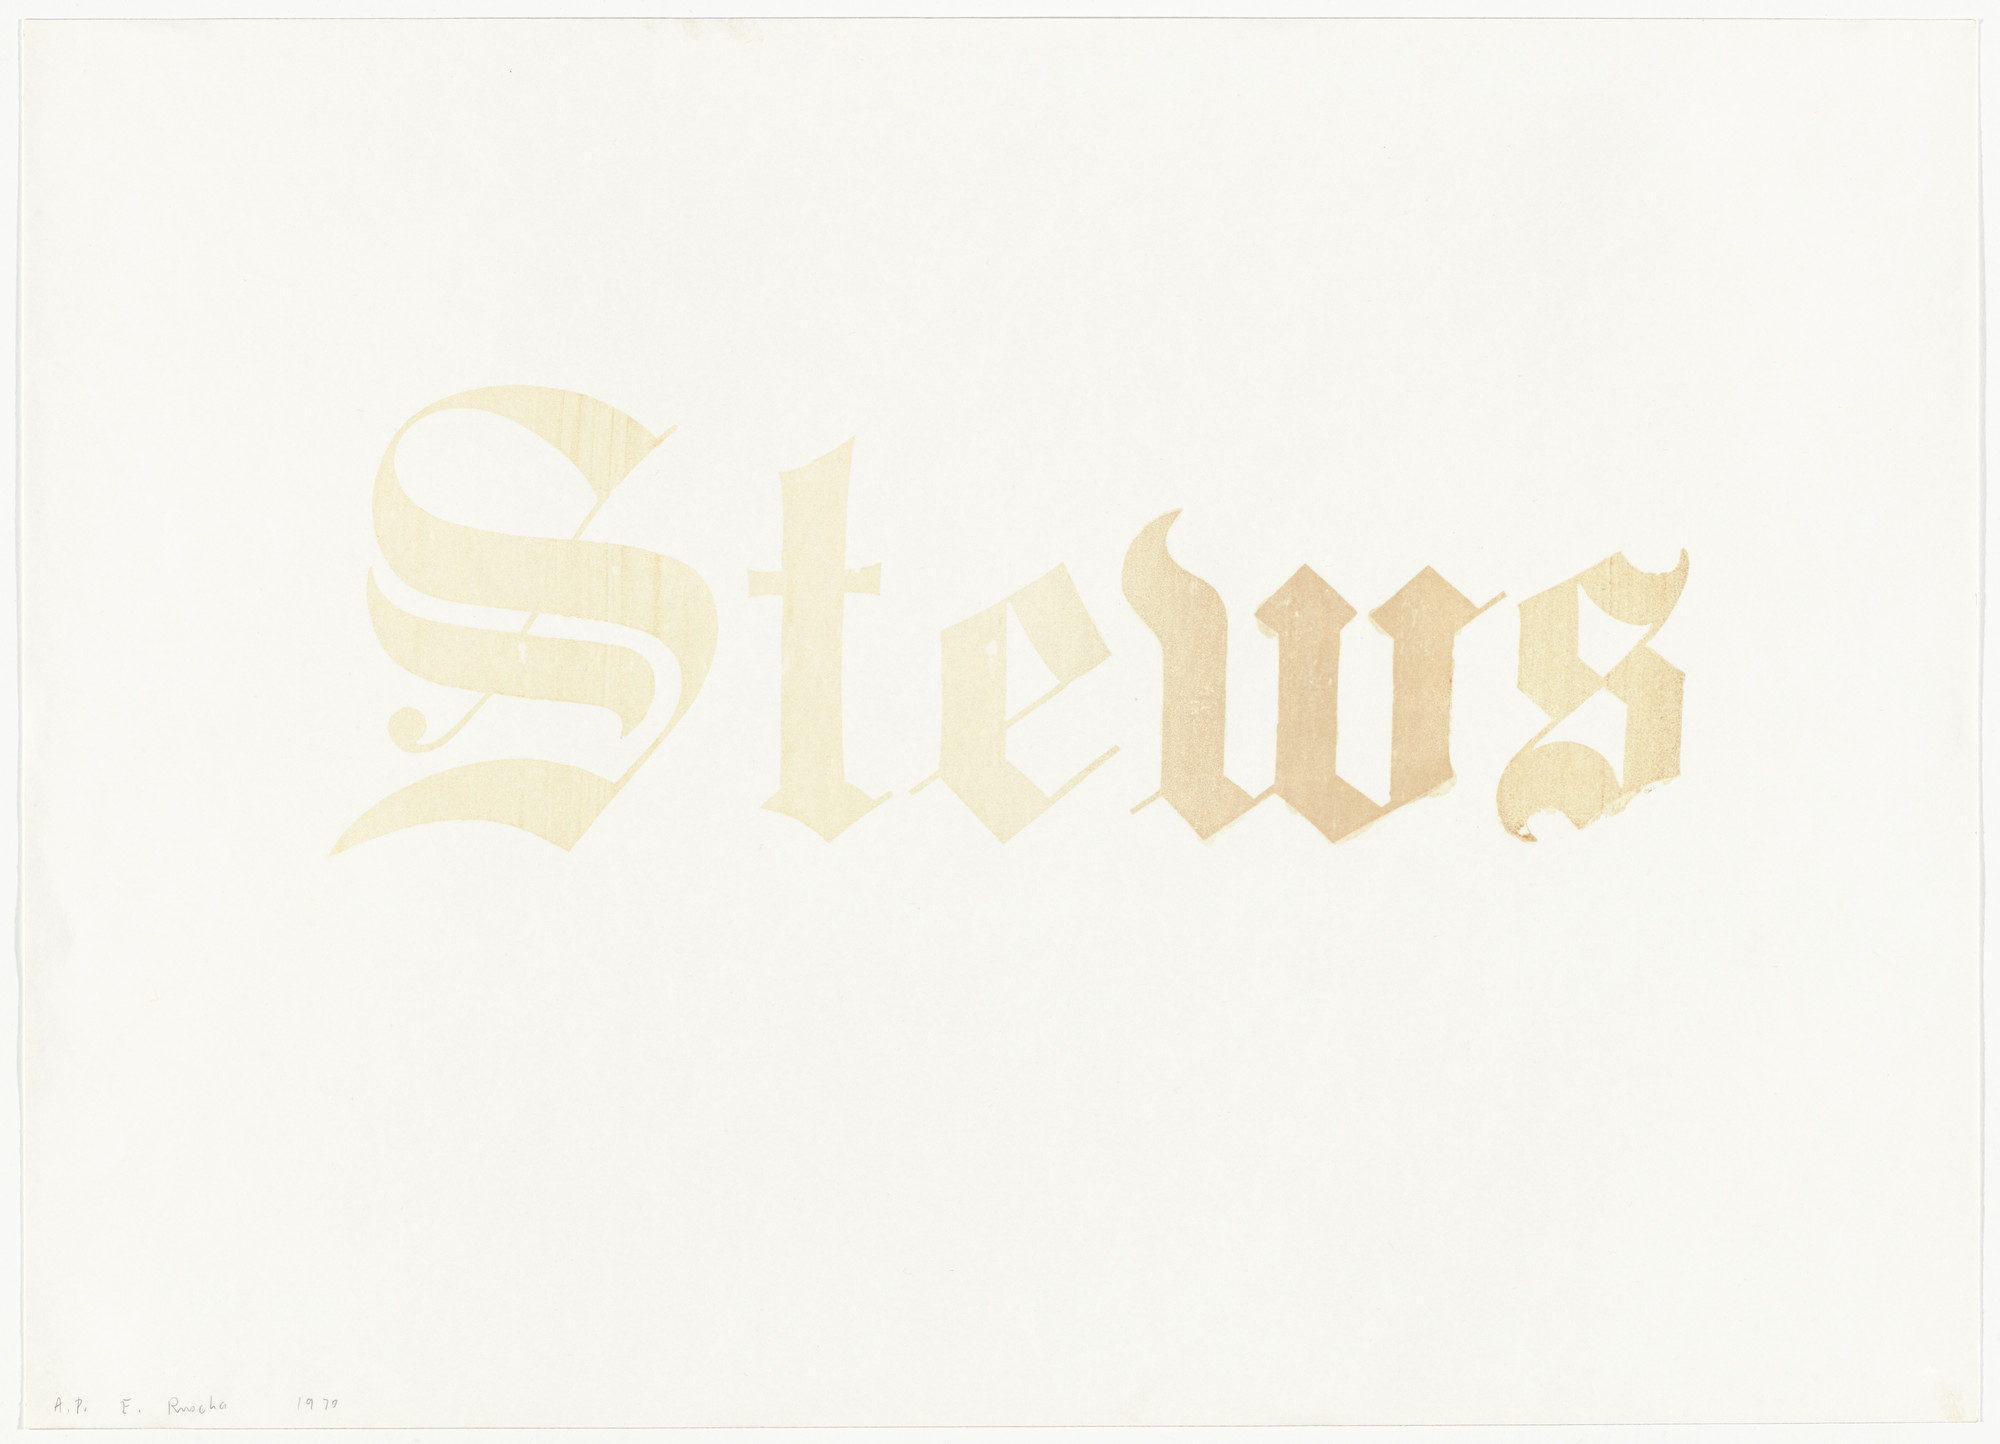 Edward Ruscha. Stews from News, Mews, Pews, Brews, Stews & Dues. 1970